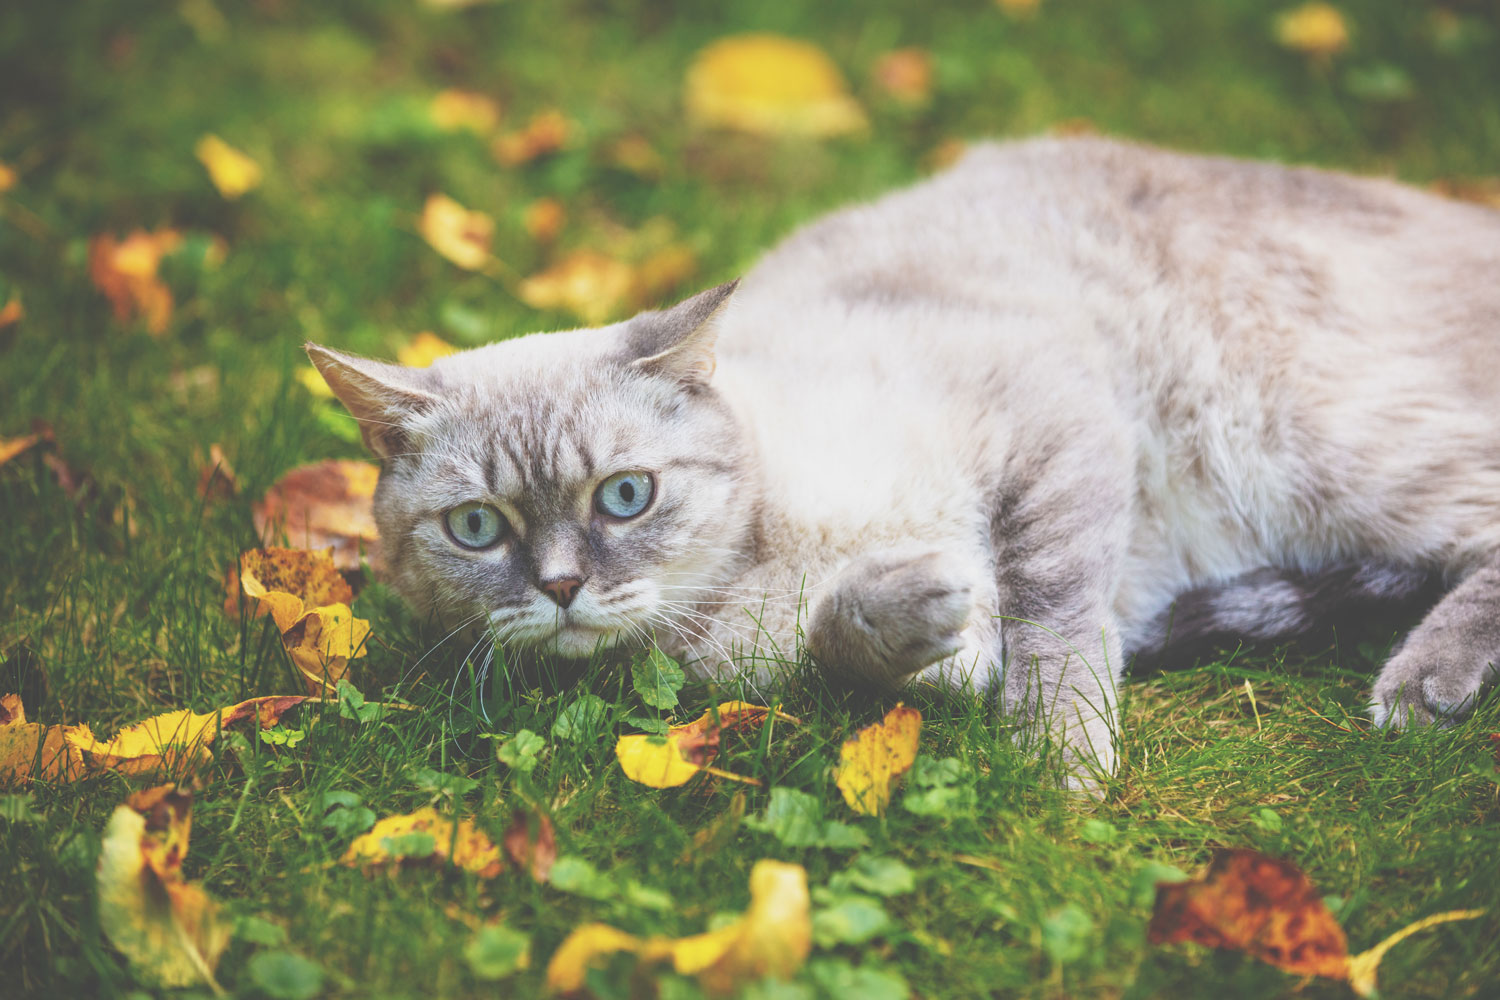 A blue lynx point Siamese cat lying on the grass